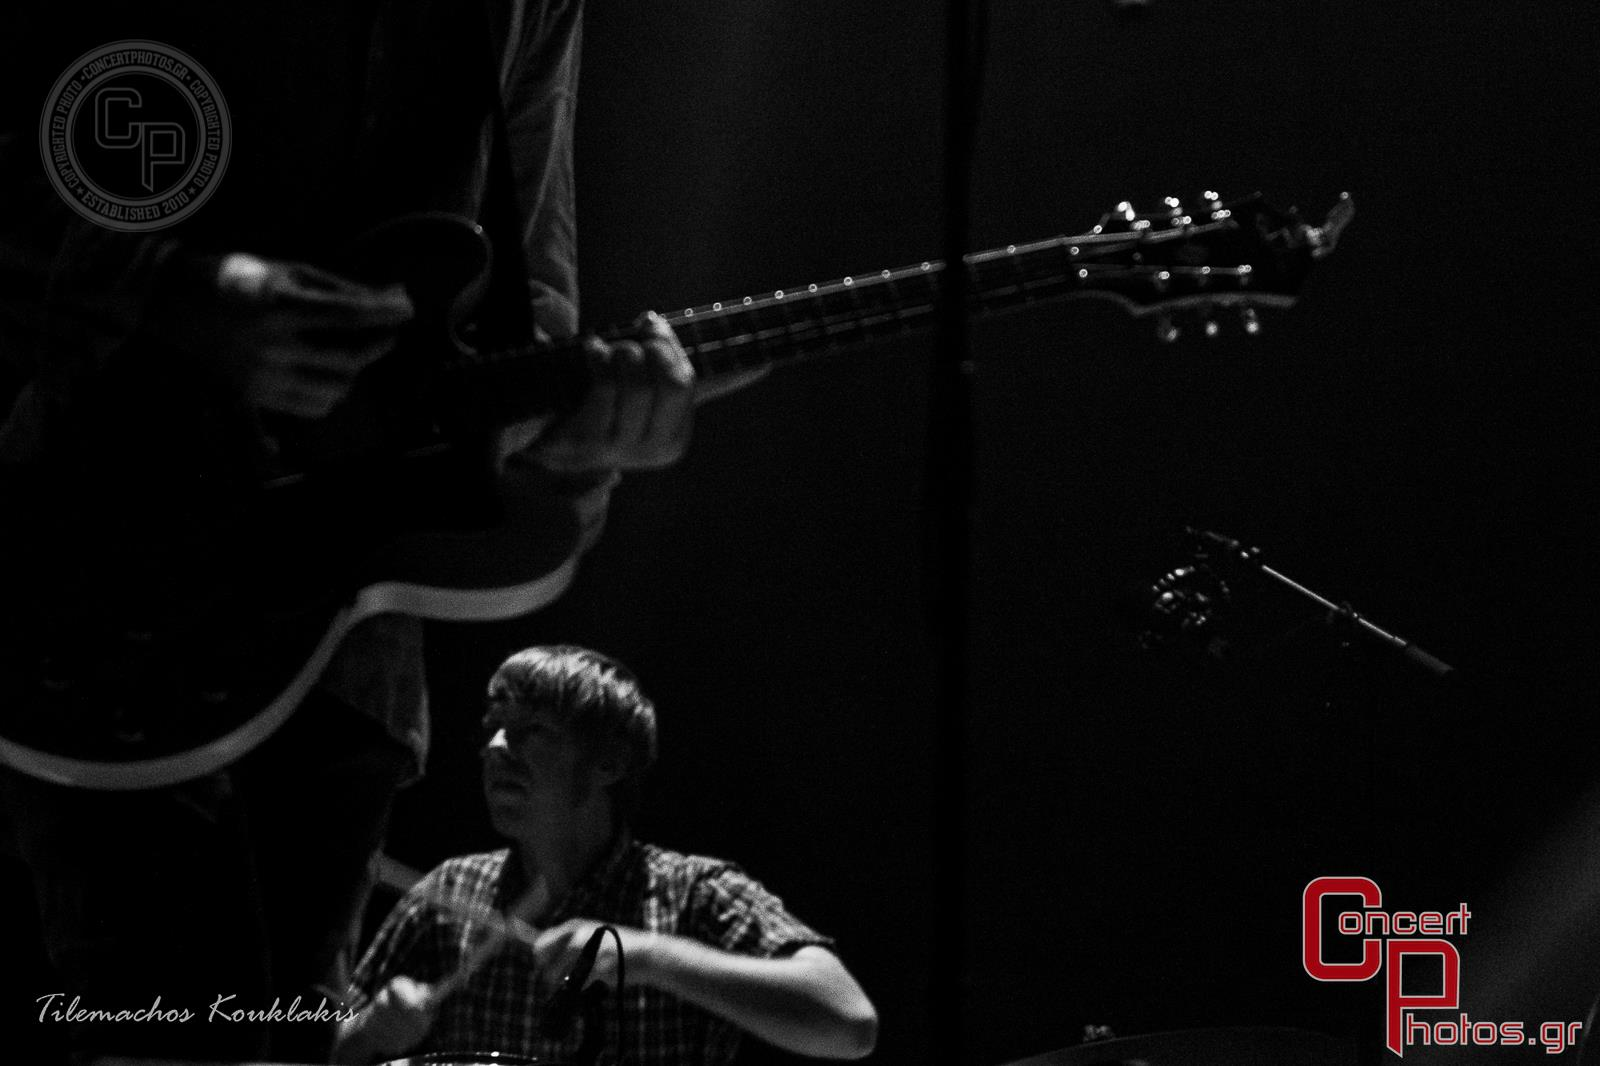 Brian Jonestown Massacre + The Velvoids-Brian Jonestown Massacre photographer:  - IMG_6404